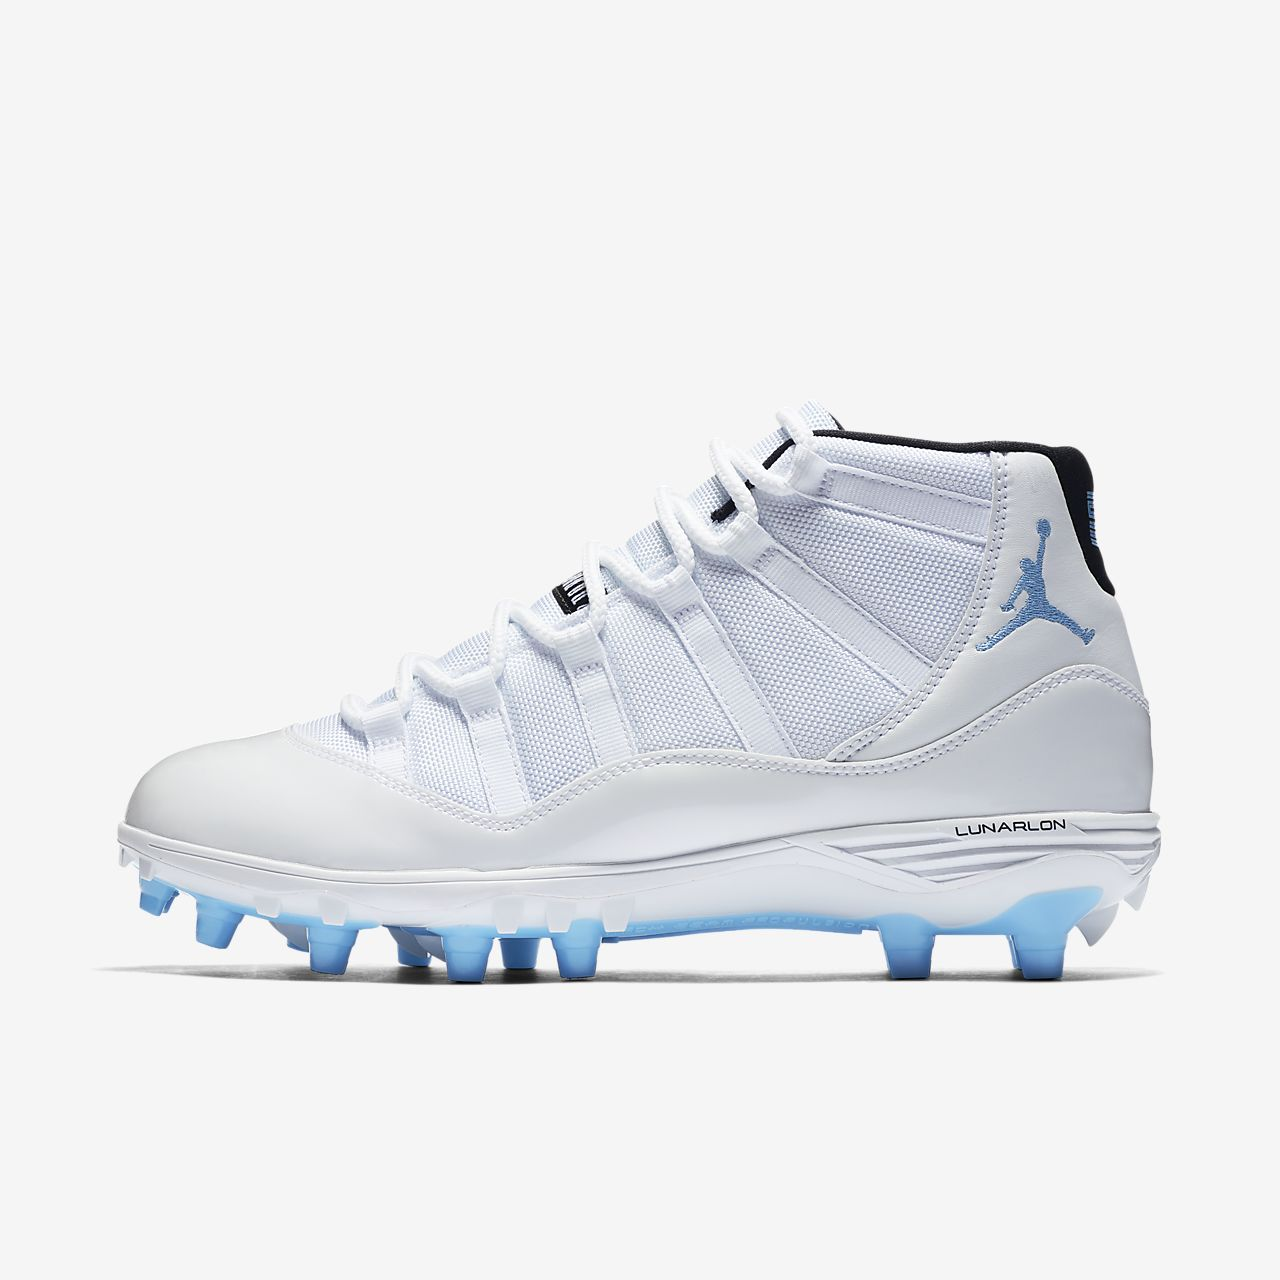 online store d07fc e7f19 Low Resolution Jordan XI Retro TD Men s Football Cleat Jordan XI Retro TD  Men s Football Cleat